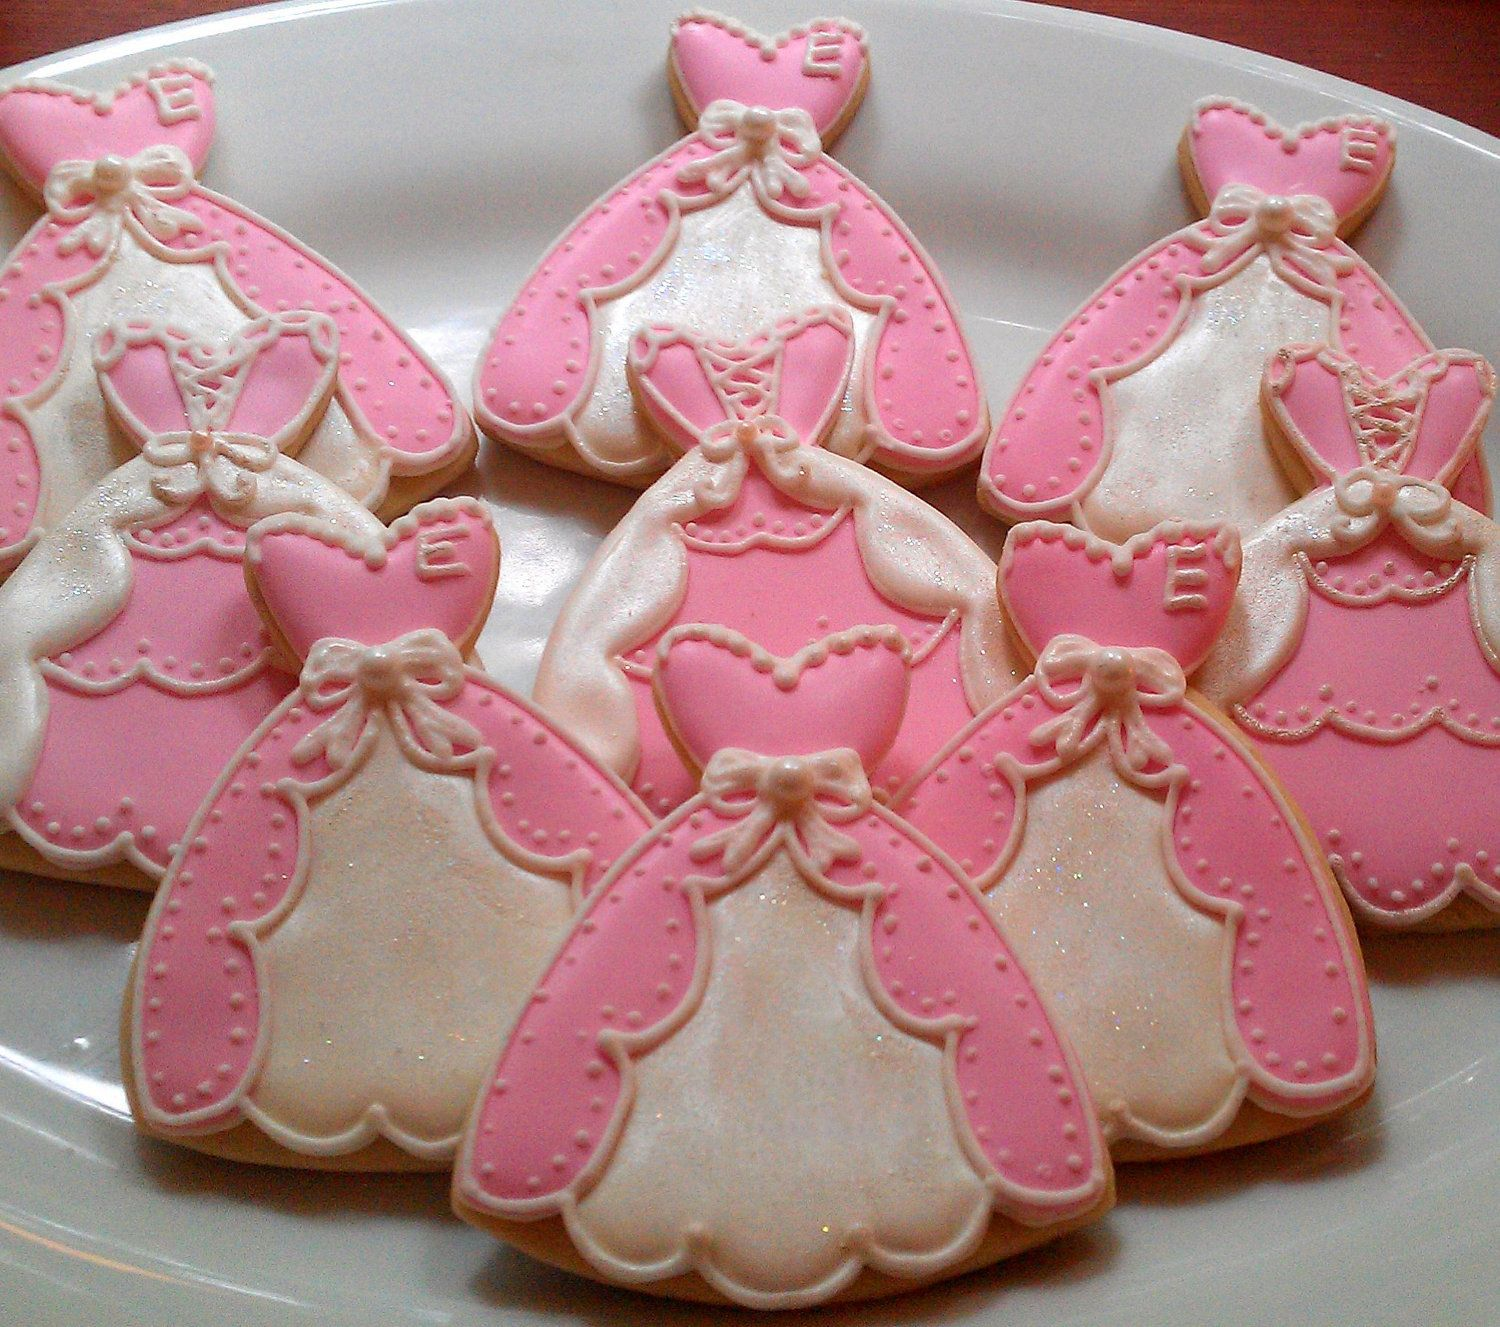 Galletas Decoradas De Princesas Princesas Galletas Galletas Princesas Galletas